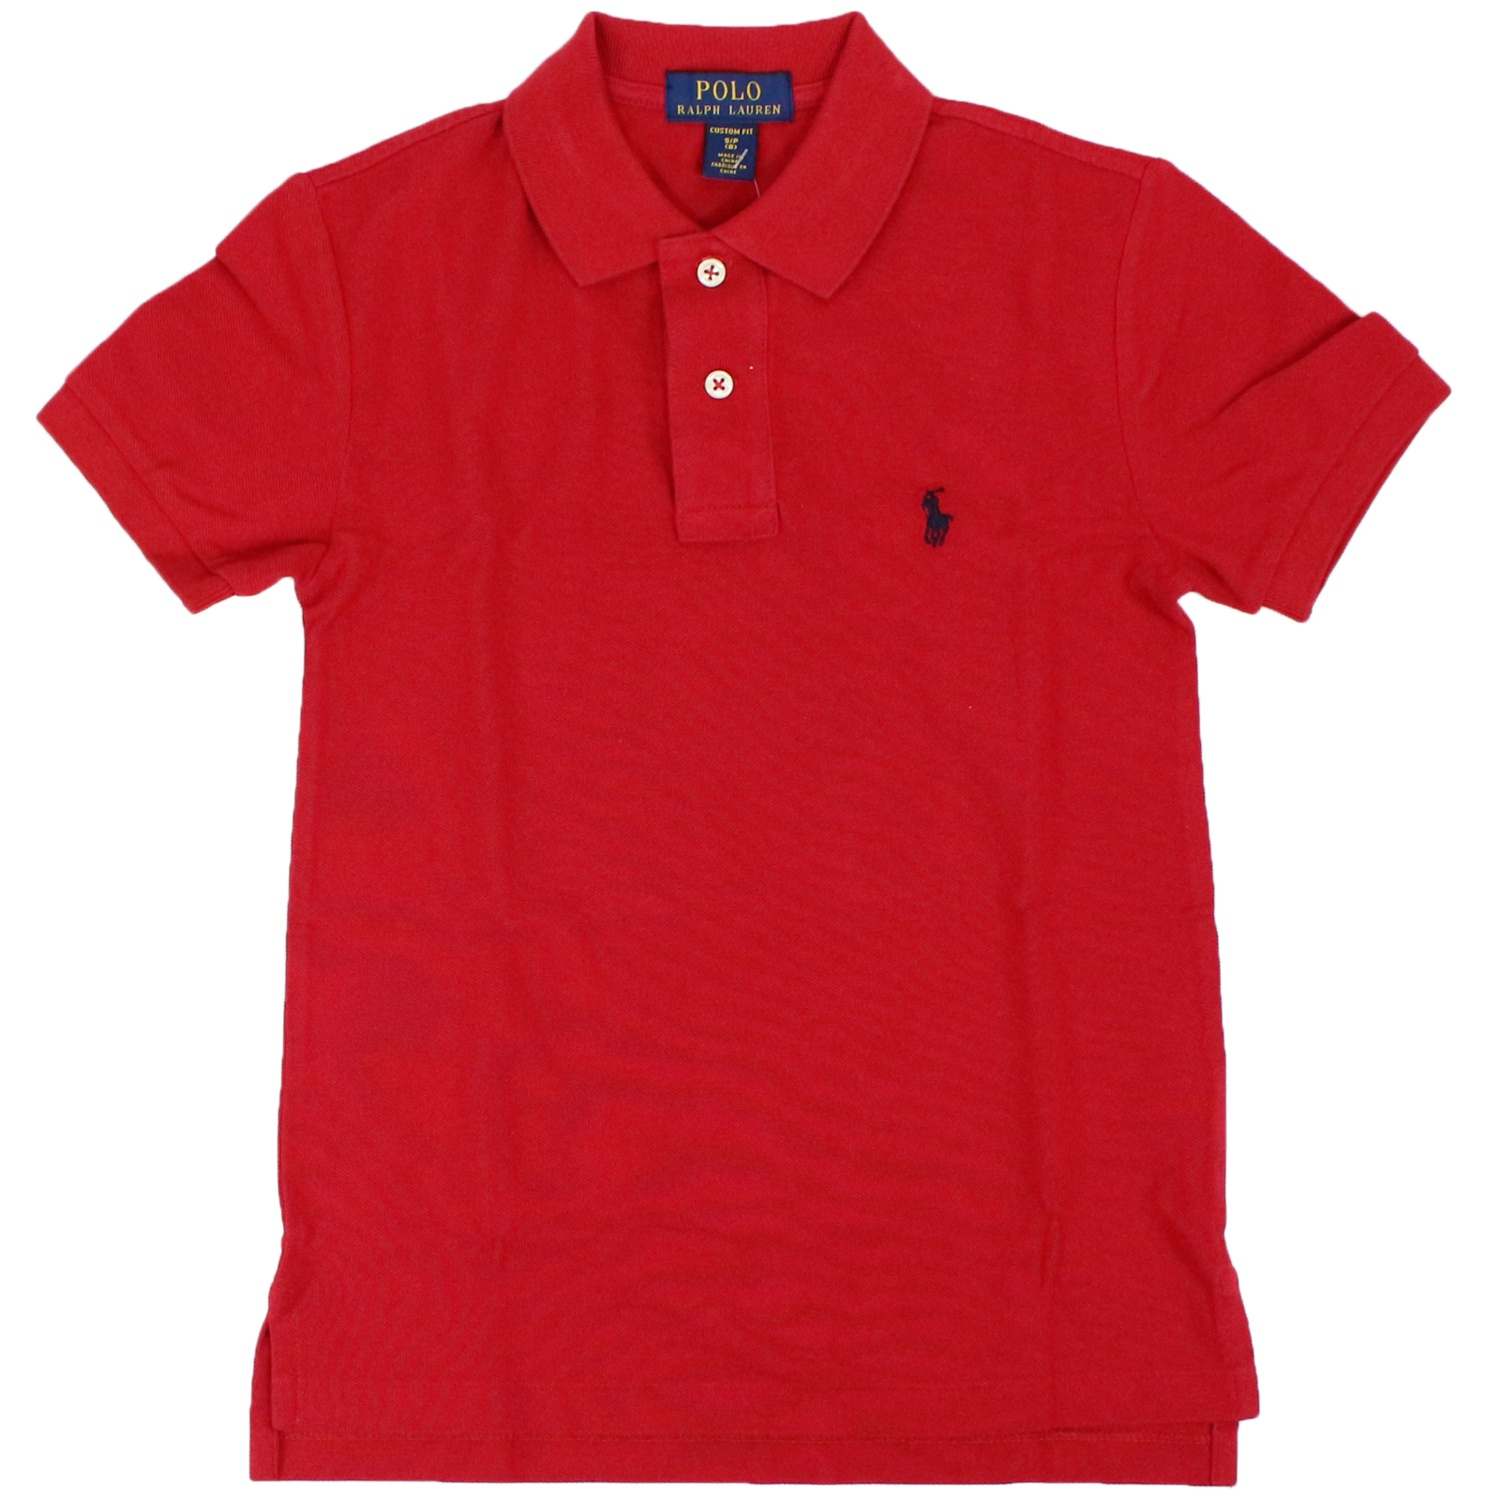 e4e5c875 2 button cotton polo shirt